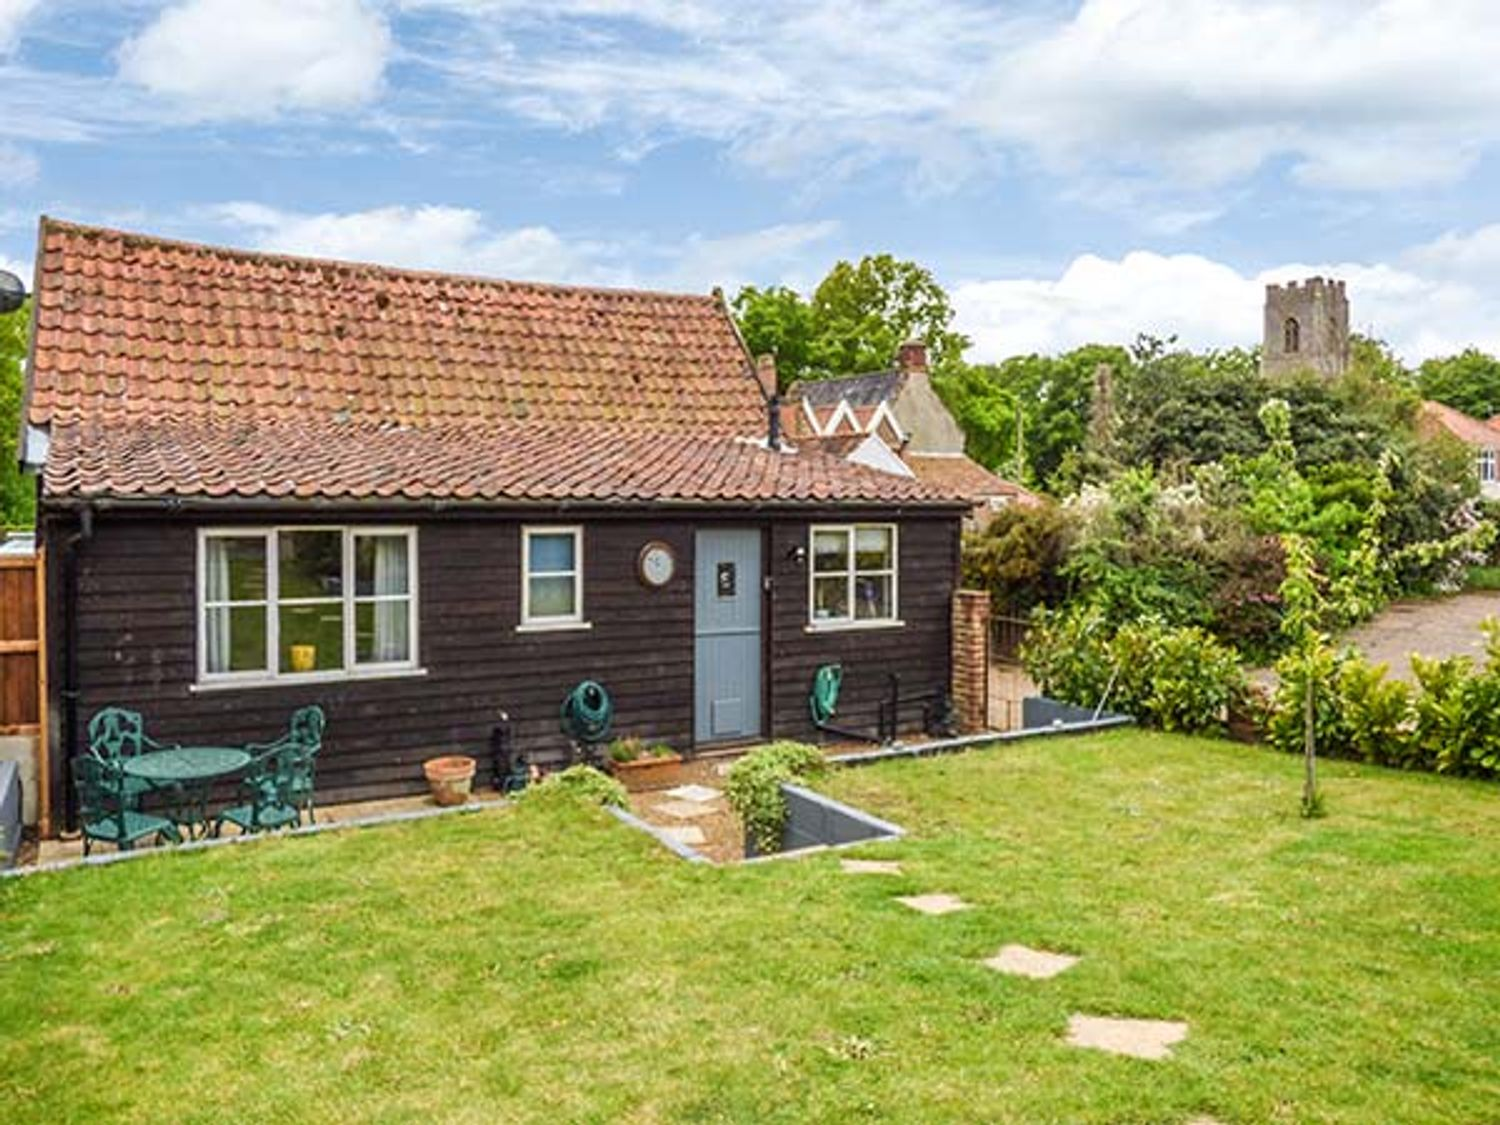 Holiday Cottages in Norfolk: The Barn, Coltishall   Sykes Cottages